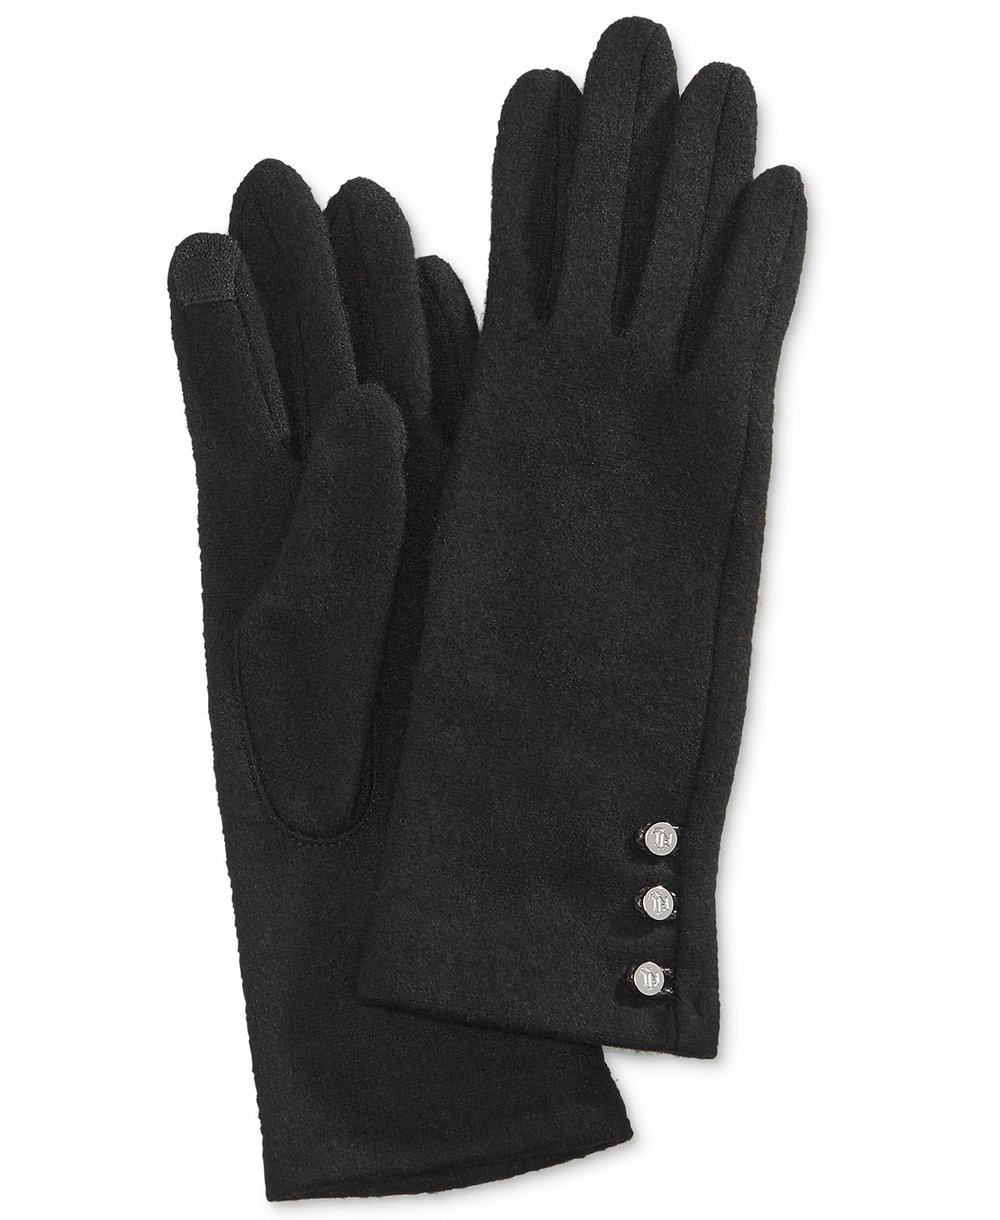 ralph lauren touch screen gloves.jpg